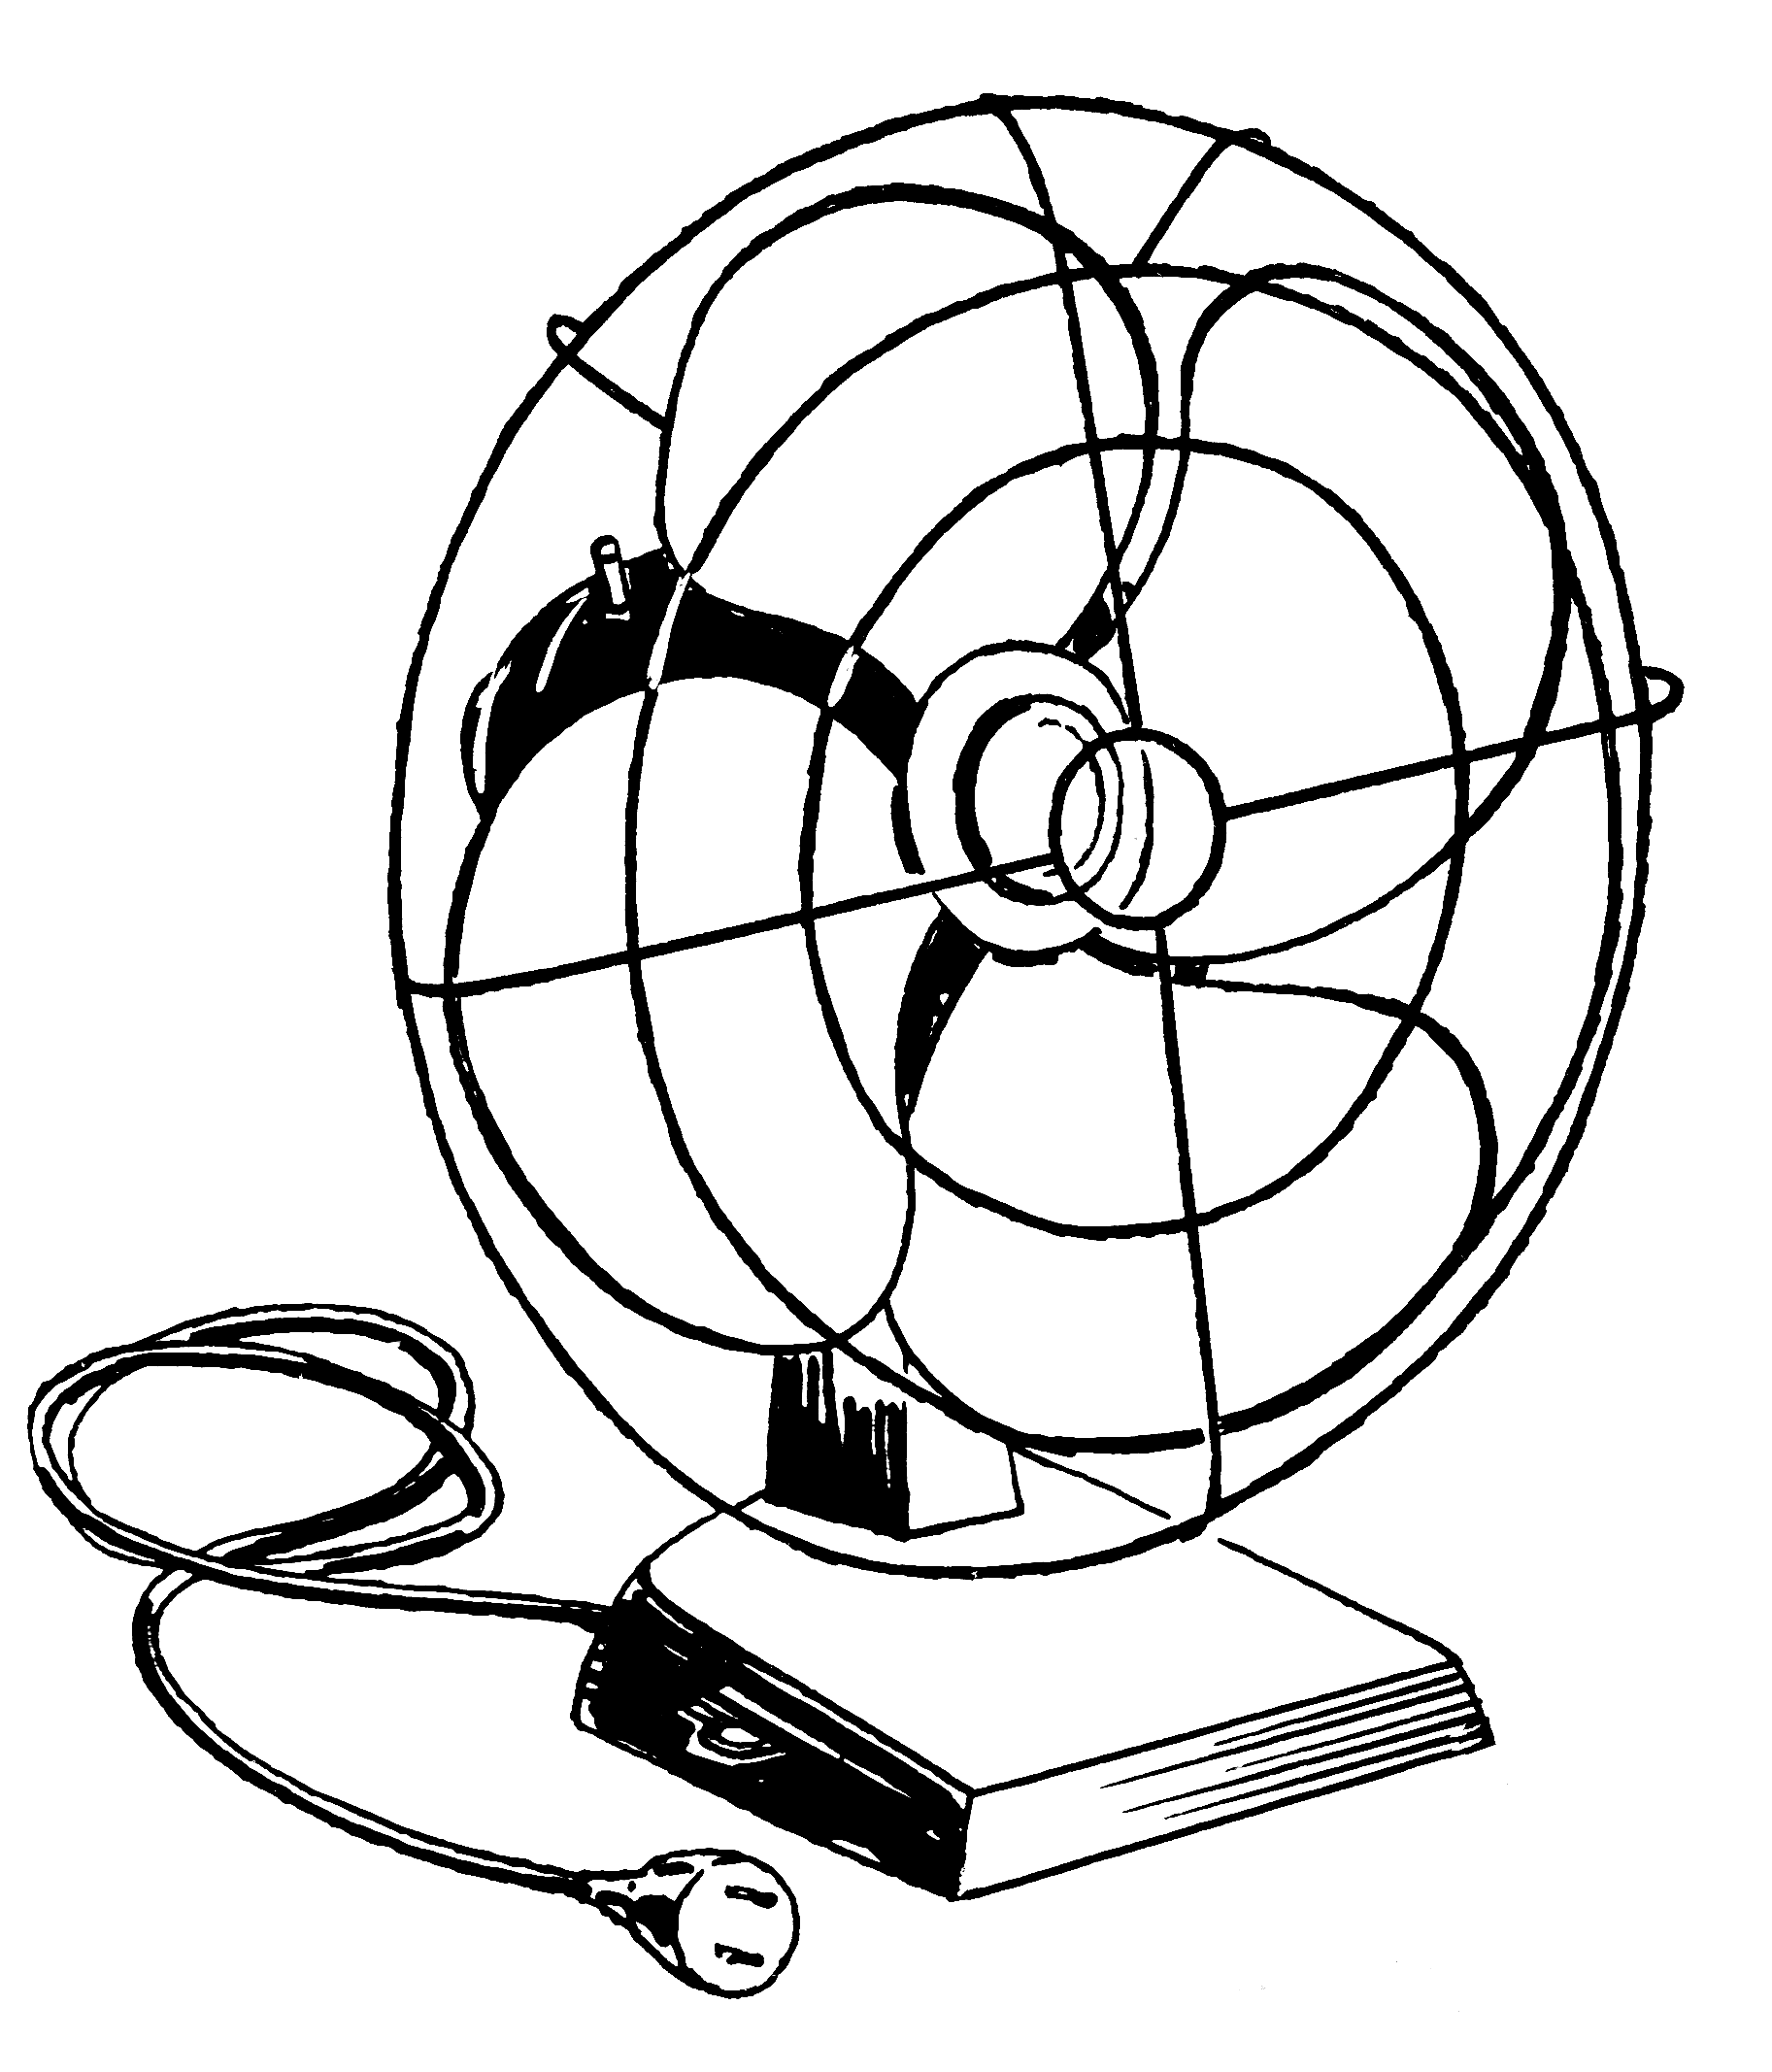 File:Fan (Electric) (PSF).png - Wikimedia Commons